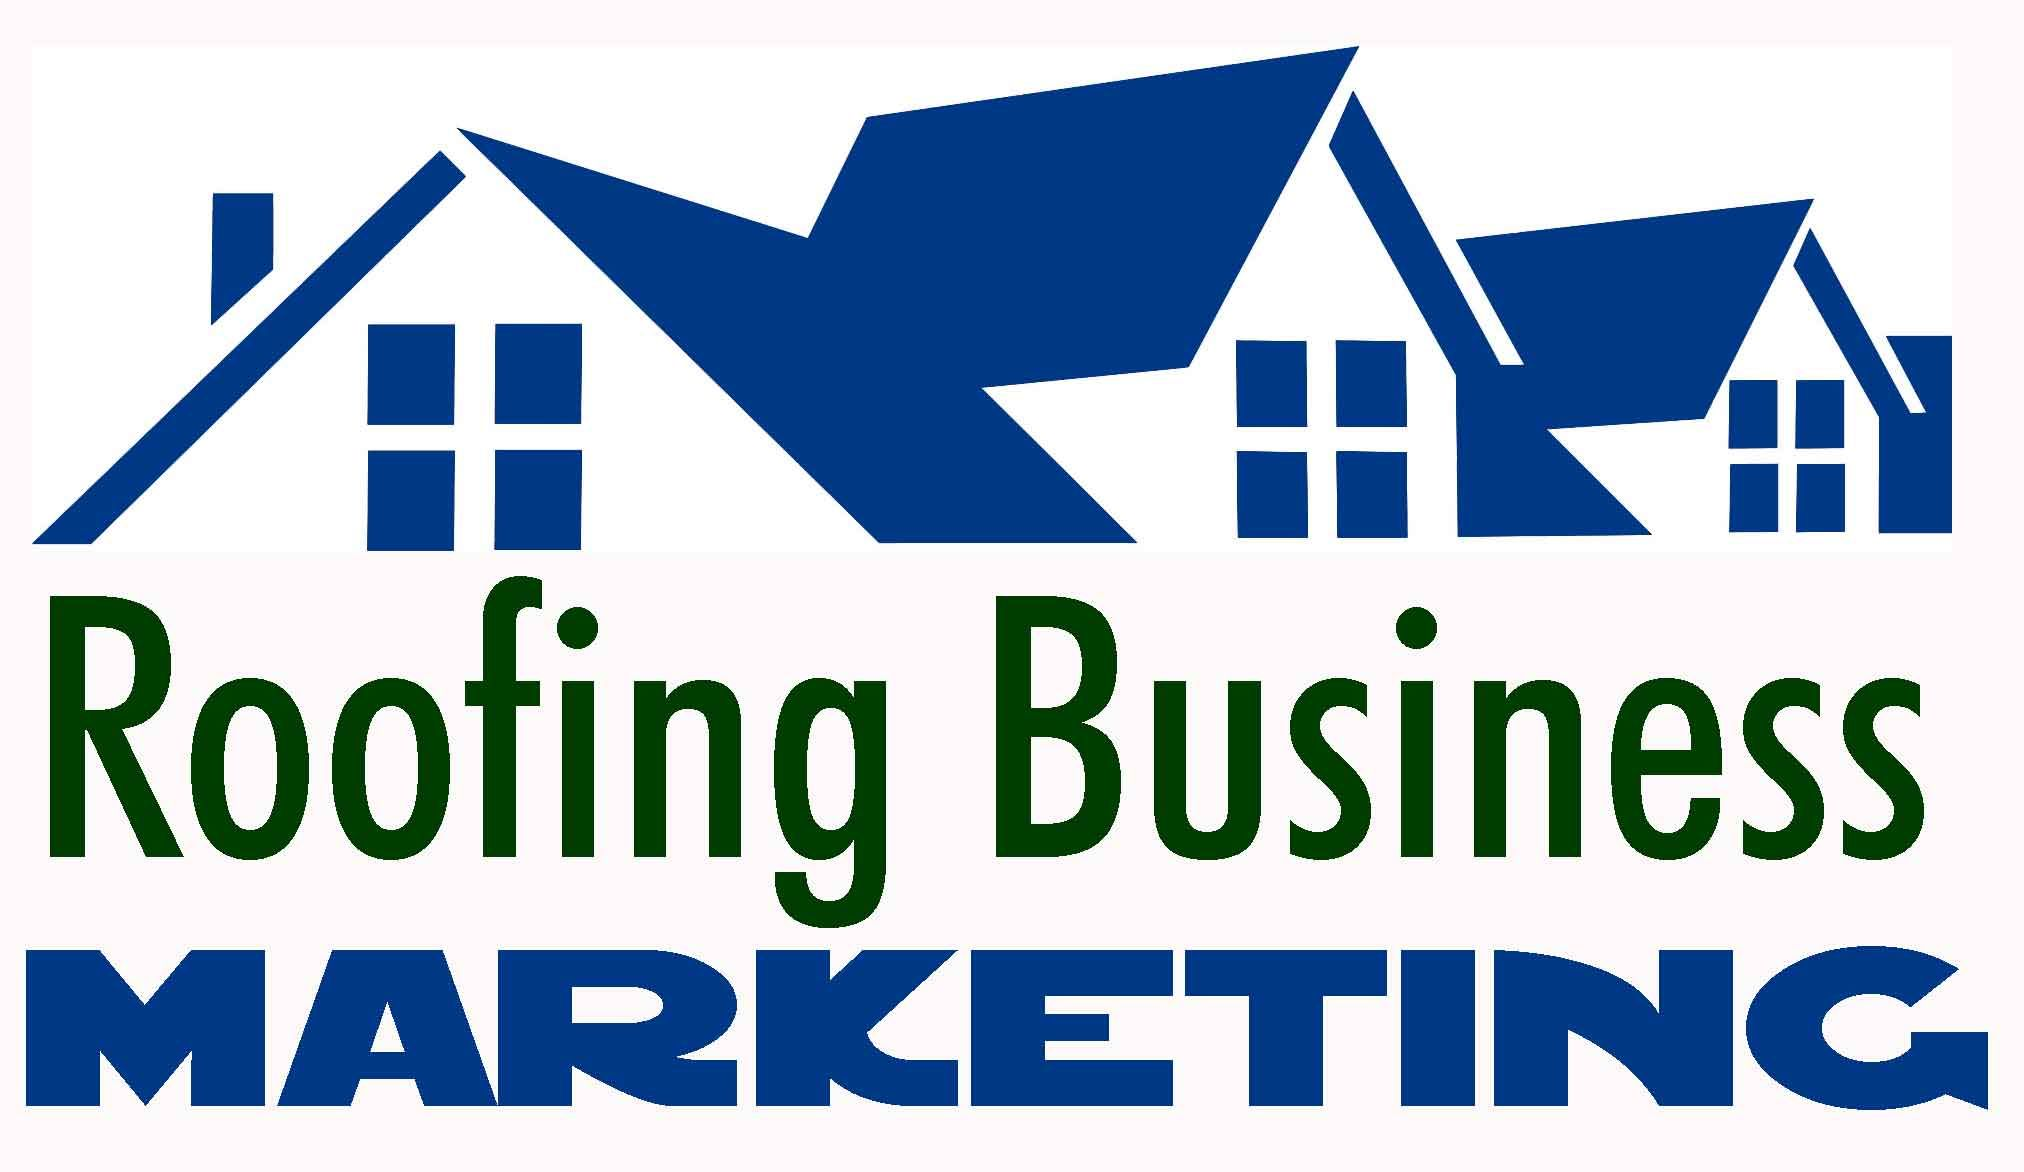 Roofing Marketing Ideas And Strategies 15 Ways To Get More Roofing Jobs Roofing Business Roofing Roofing Jobs